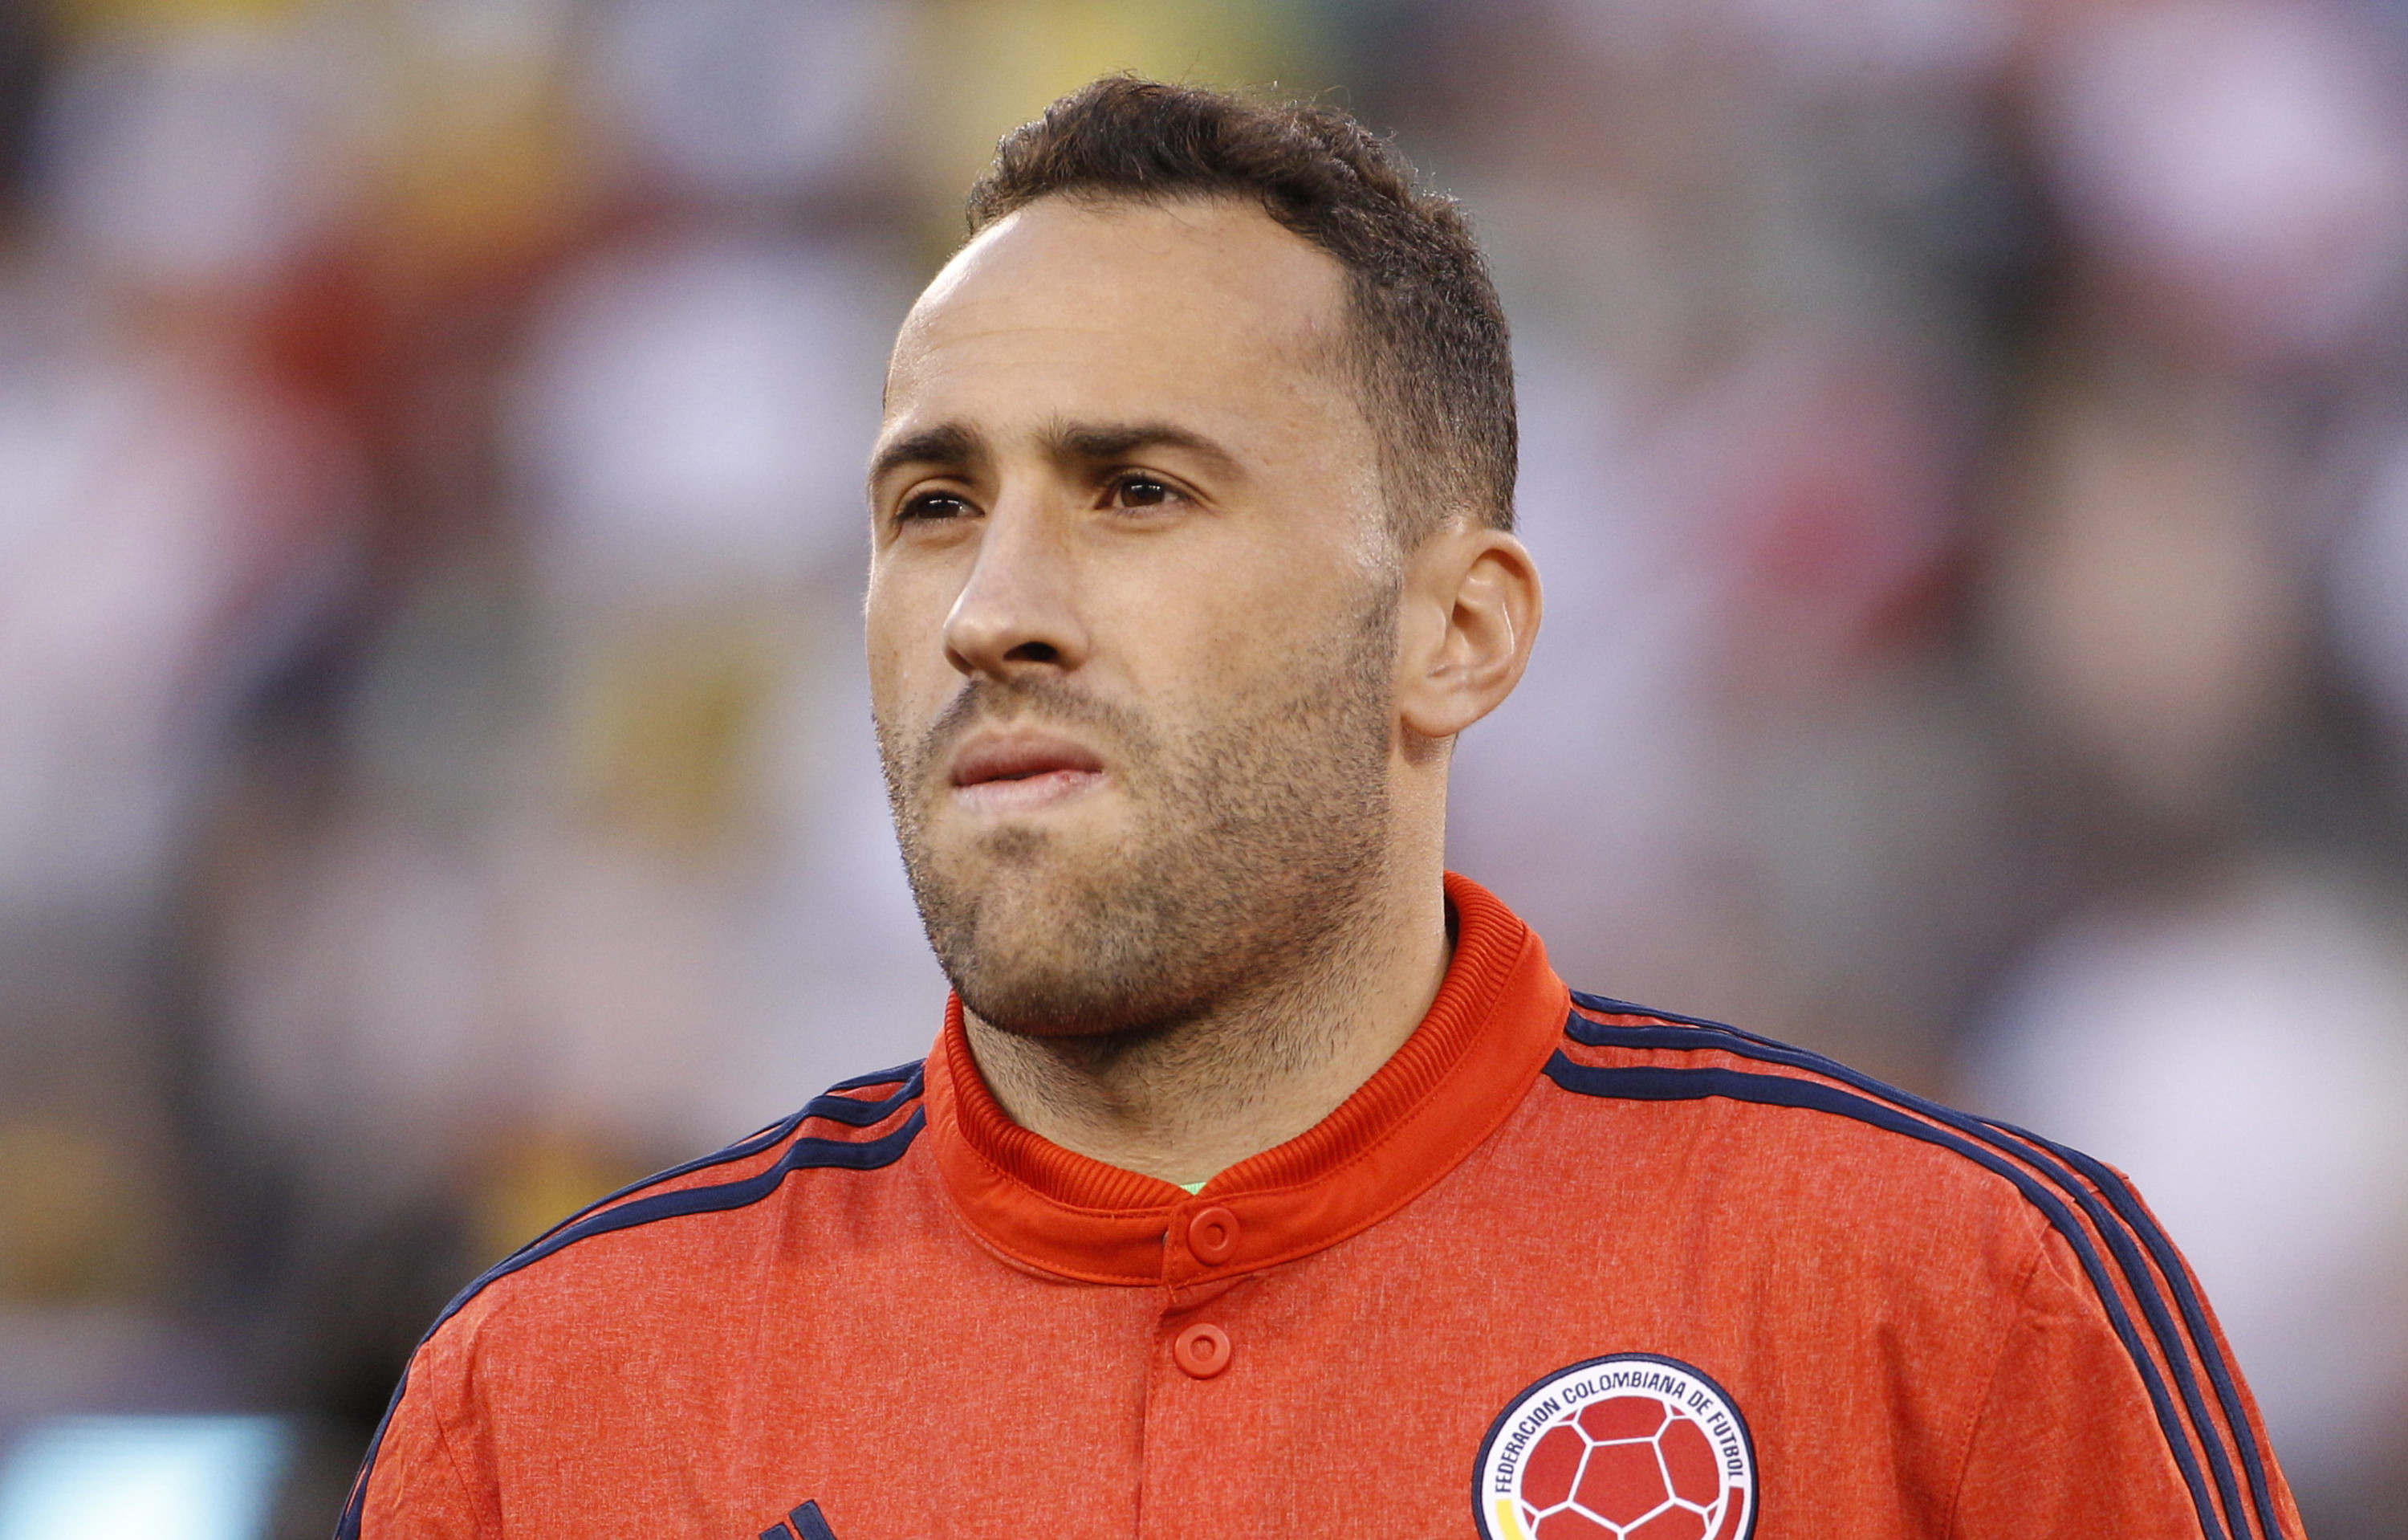 Arsenal asking too much for David Ospina transfer, says Besiktas president